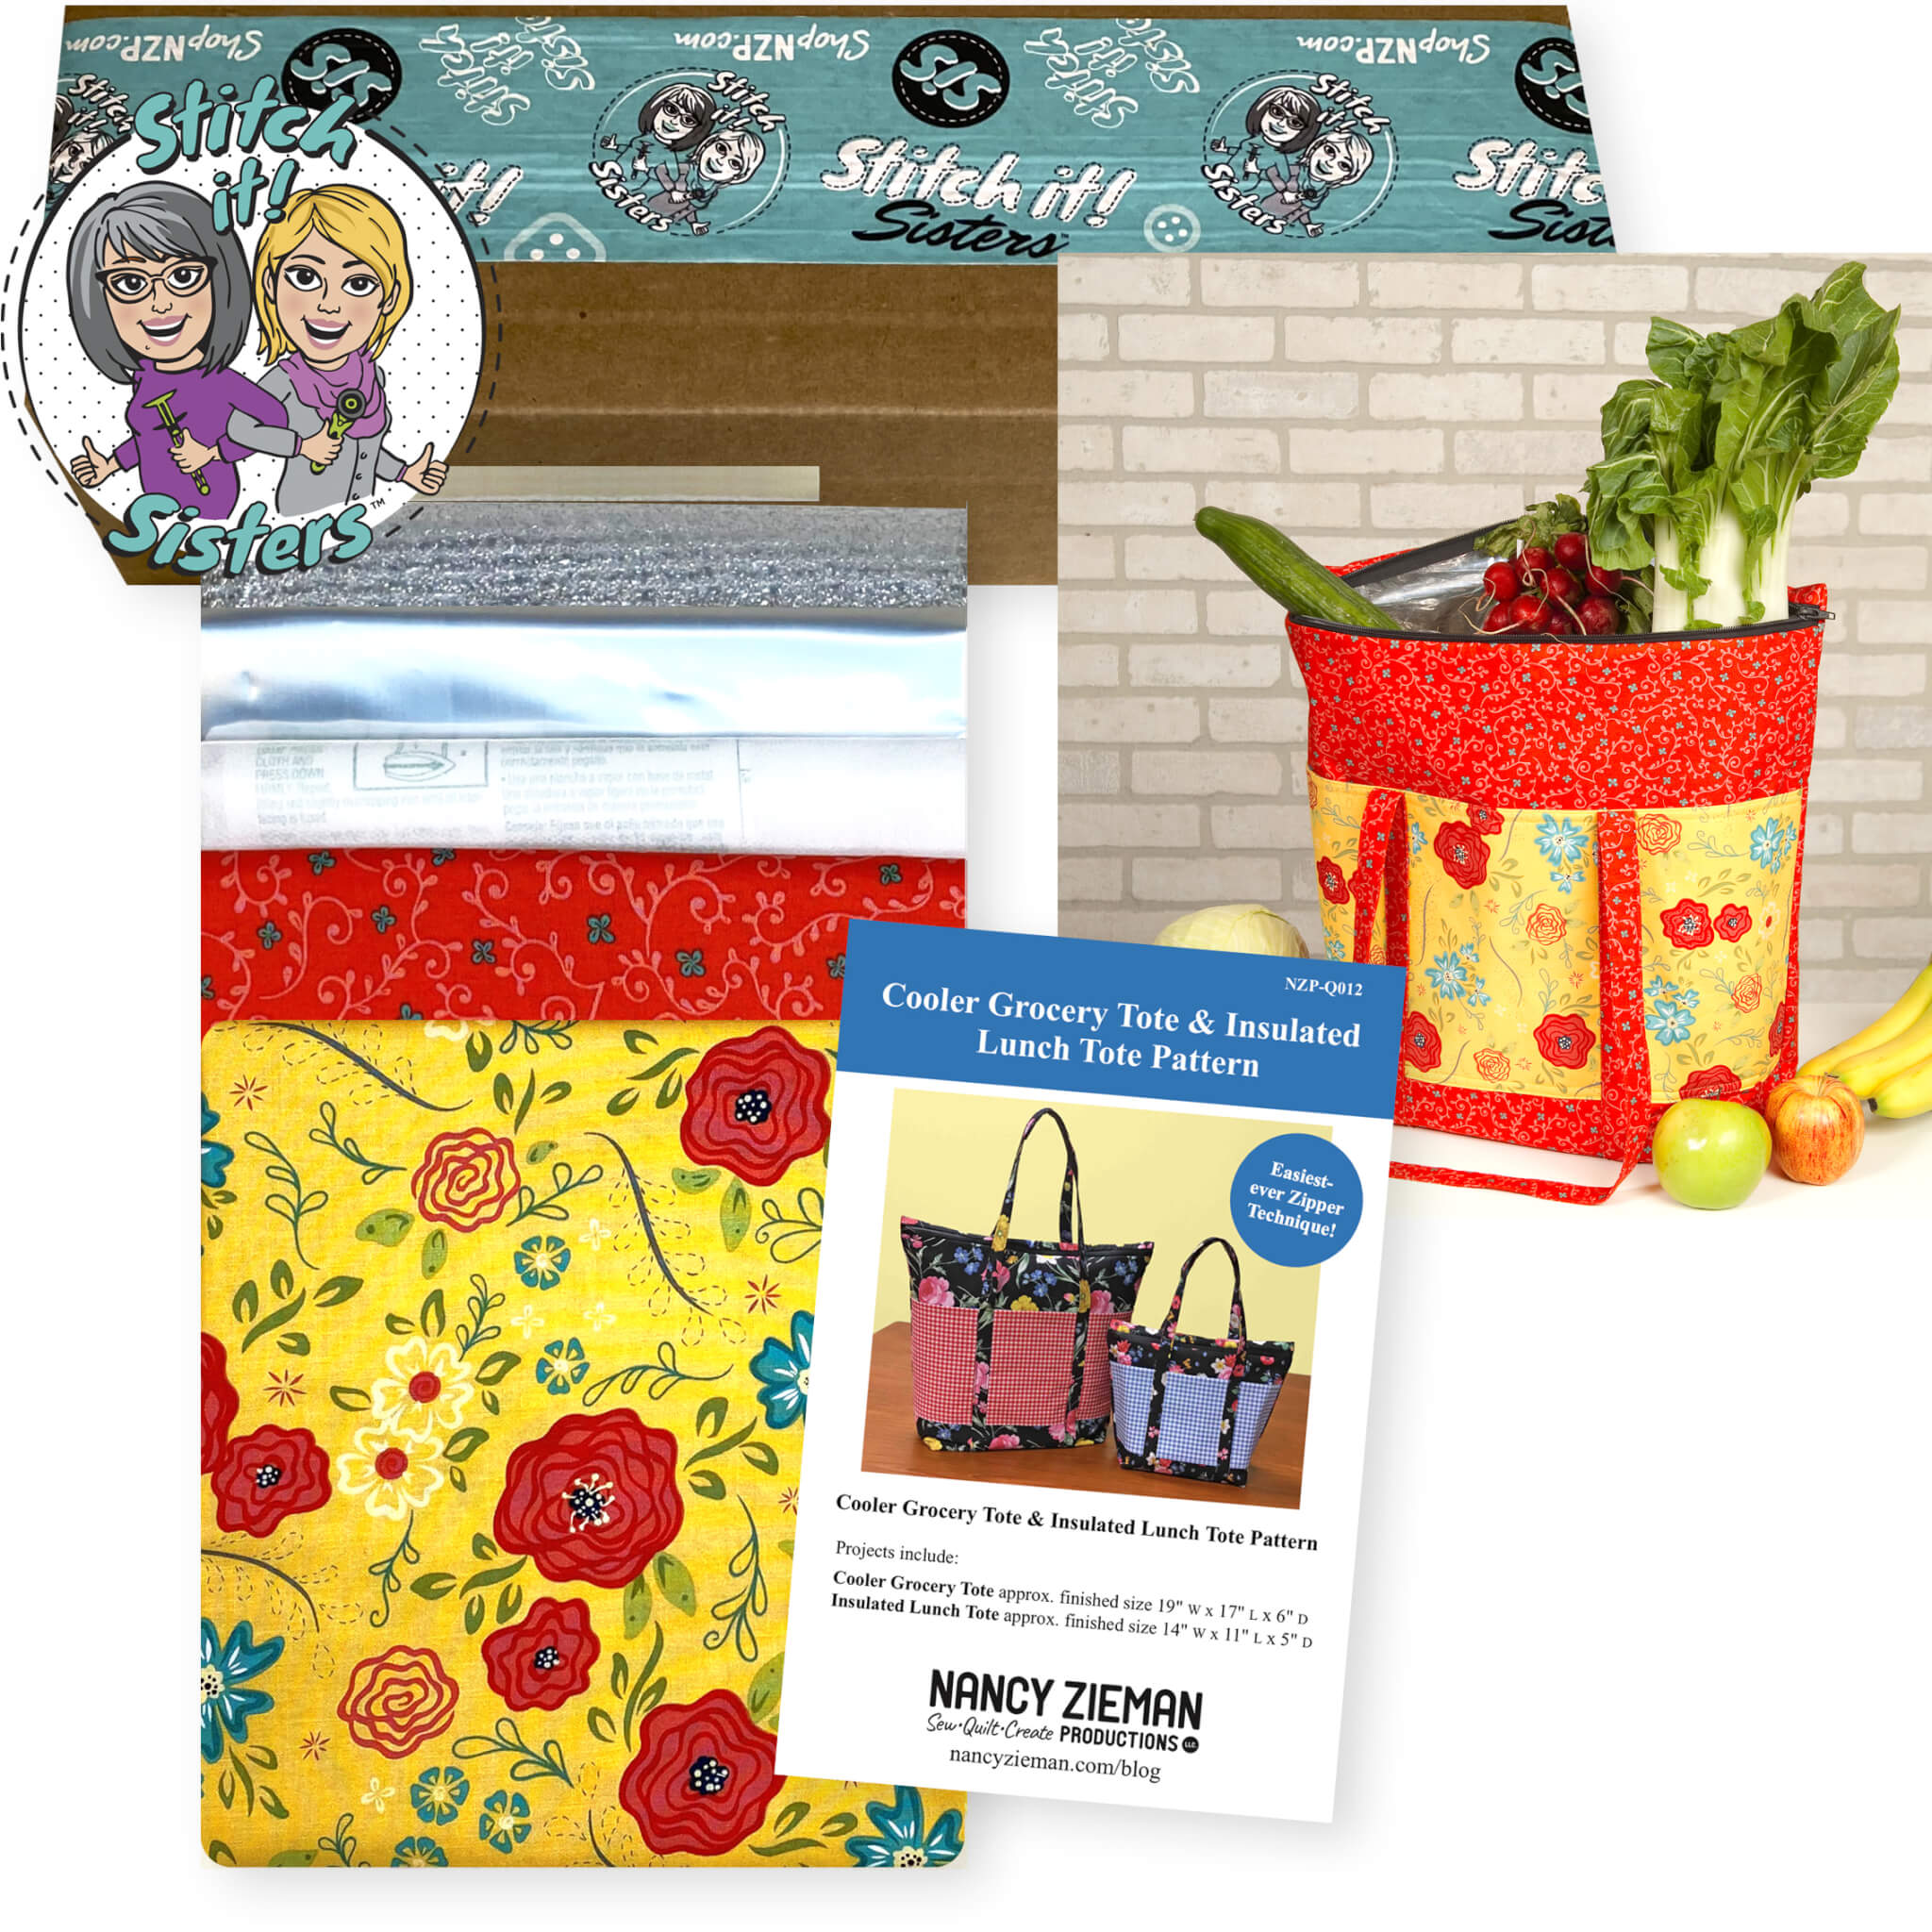 Cooler Grocery Tote Sewing Project Bundle Box available at Nancy Zieman Productions at ShopNZP.com